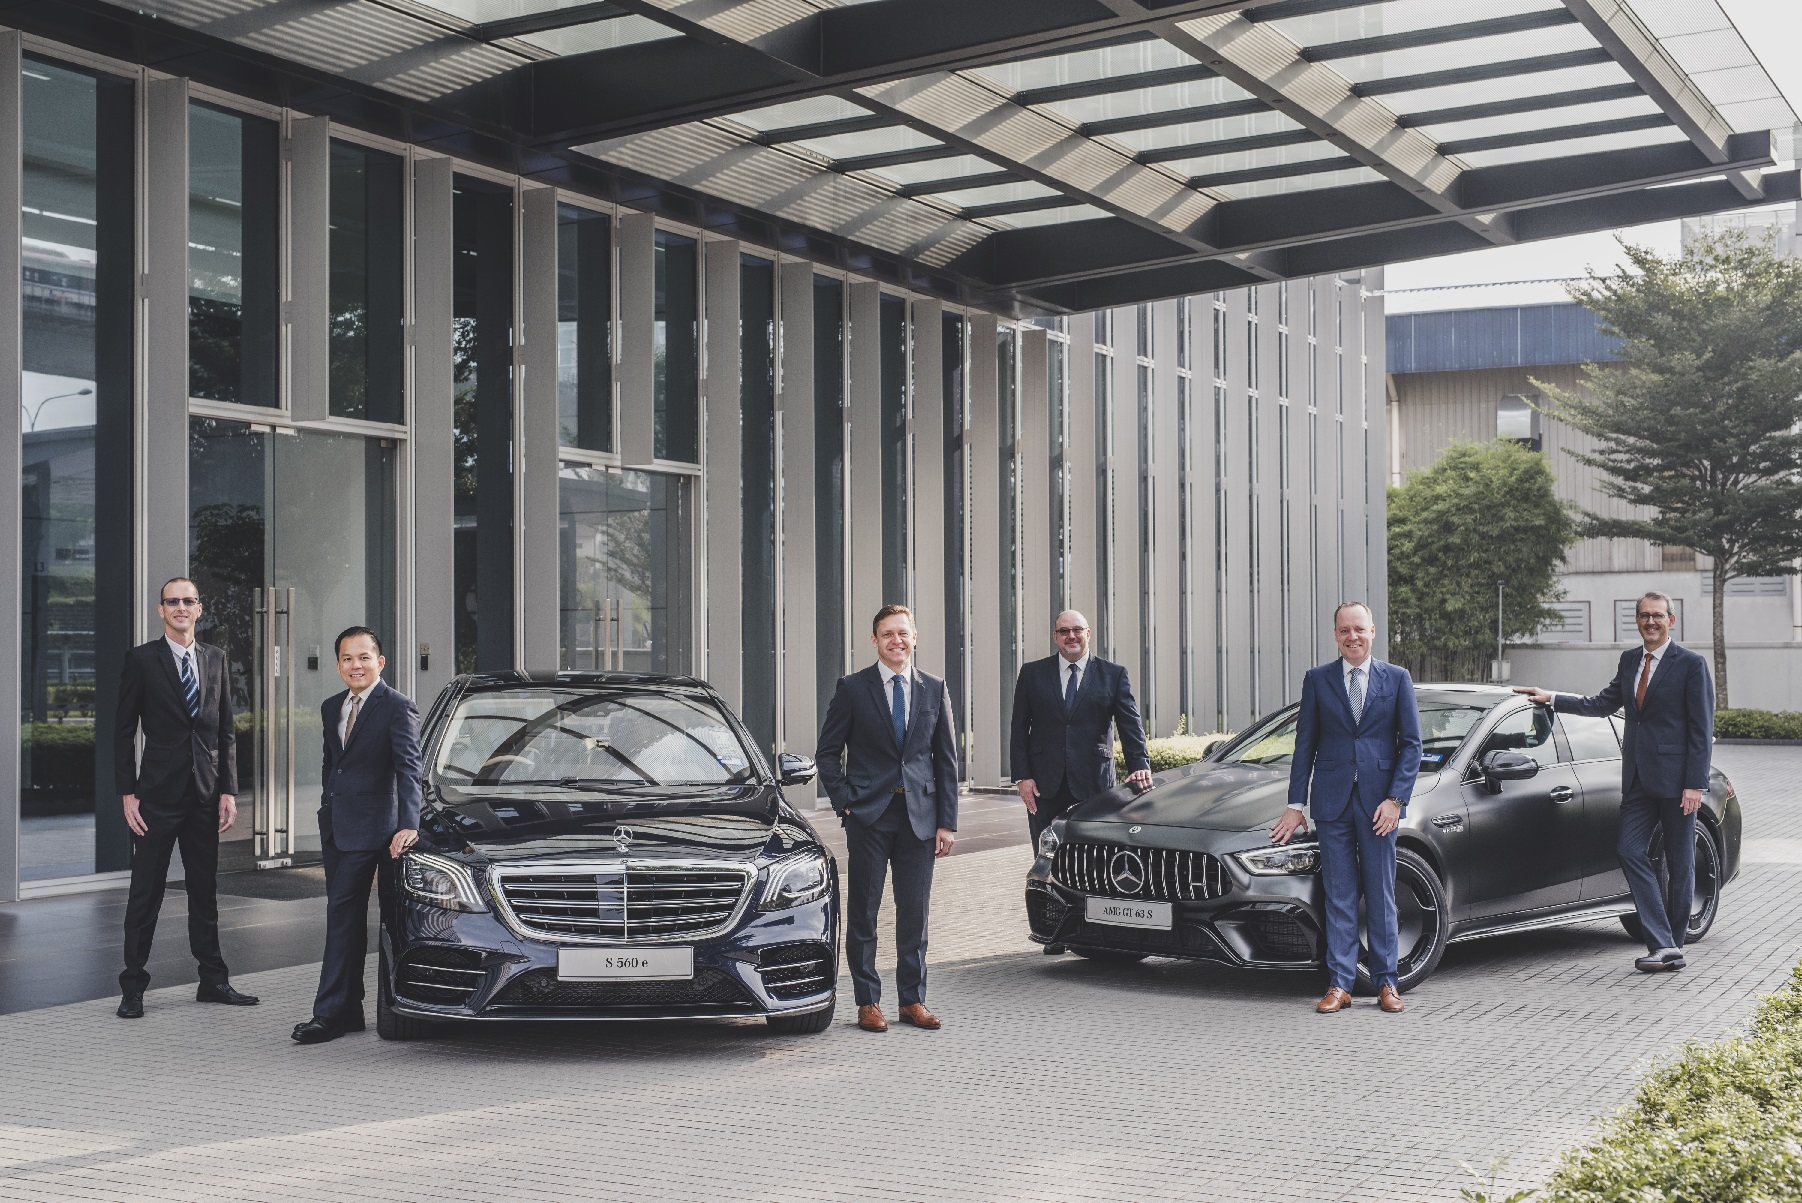 Mercedes Benz Remains The Top Luxury Car Brand In Malaysia The Edge Markets